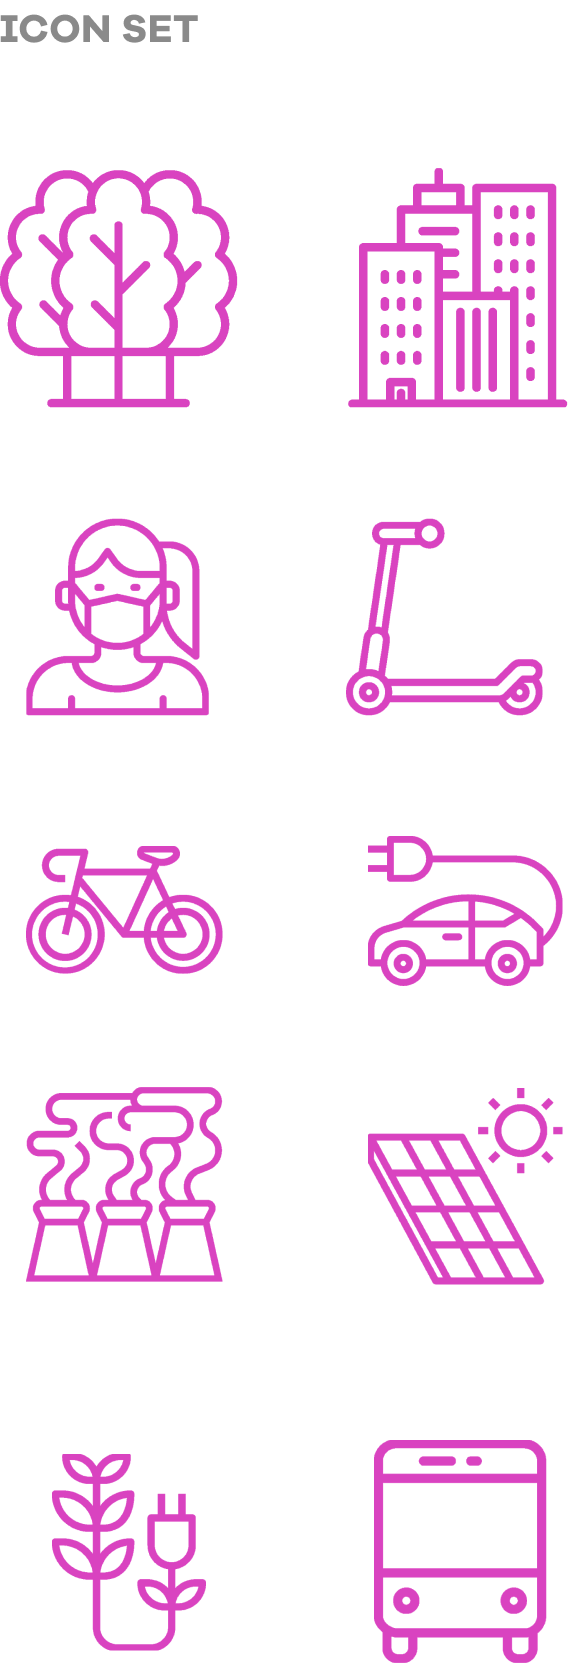 IconSet_mobile